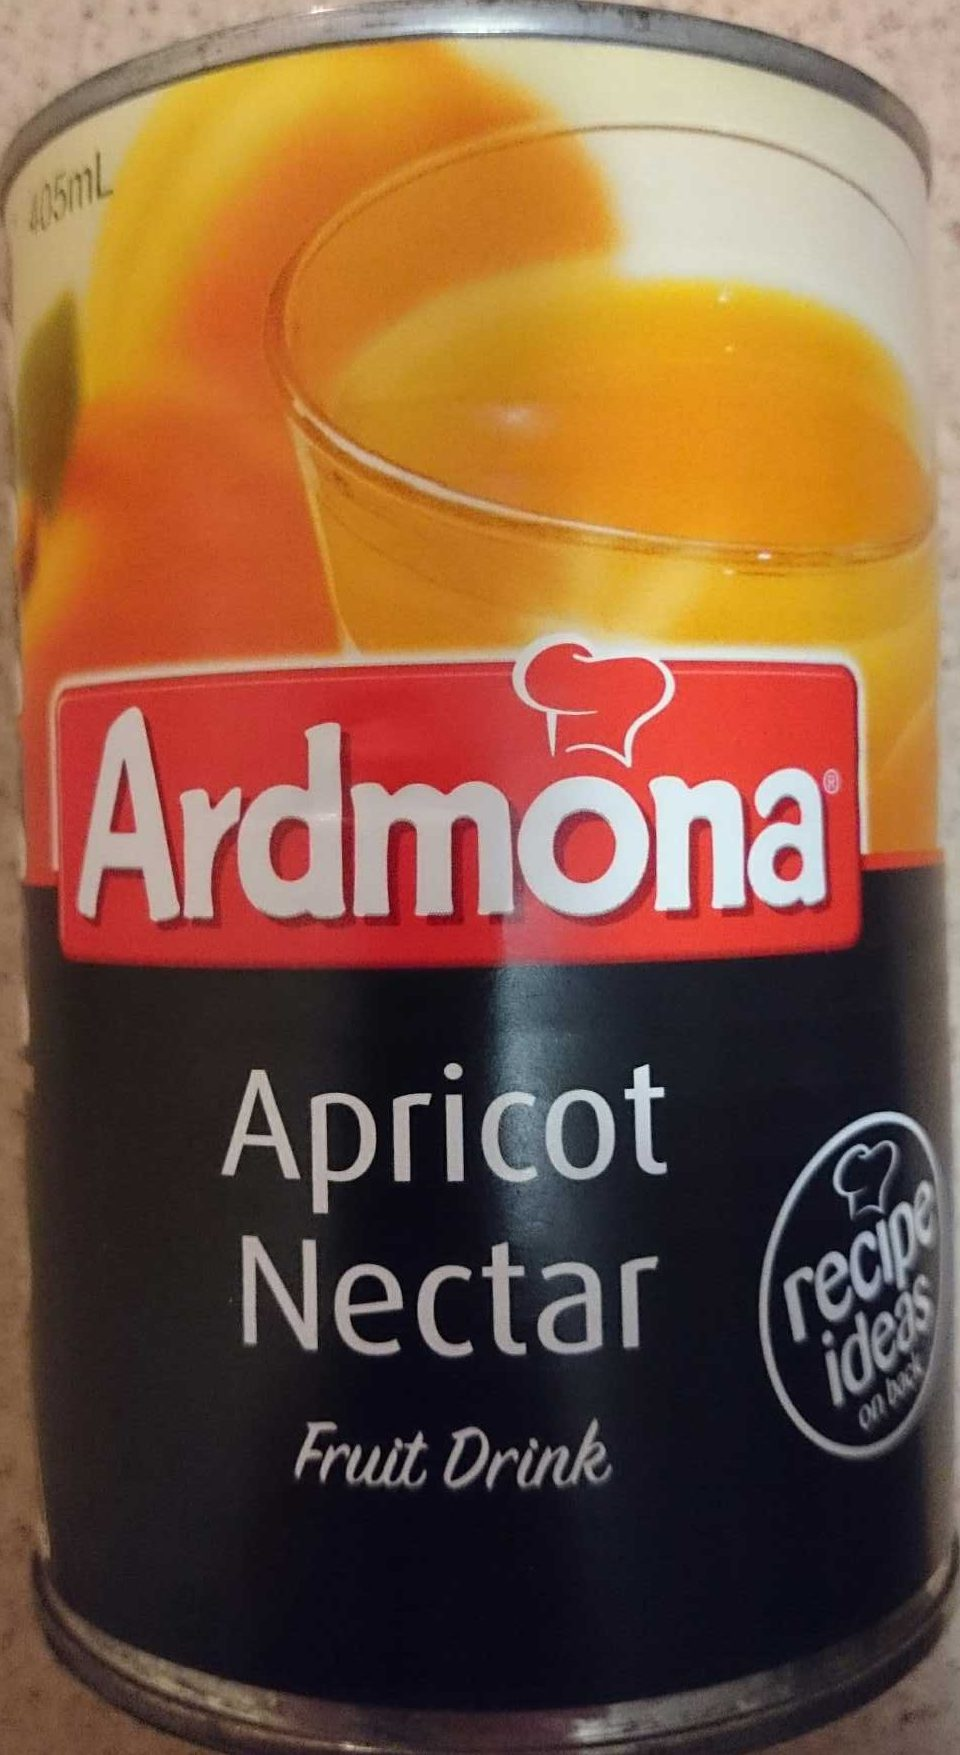 Apricot Nectar Fruit Drink - Product - en